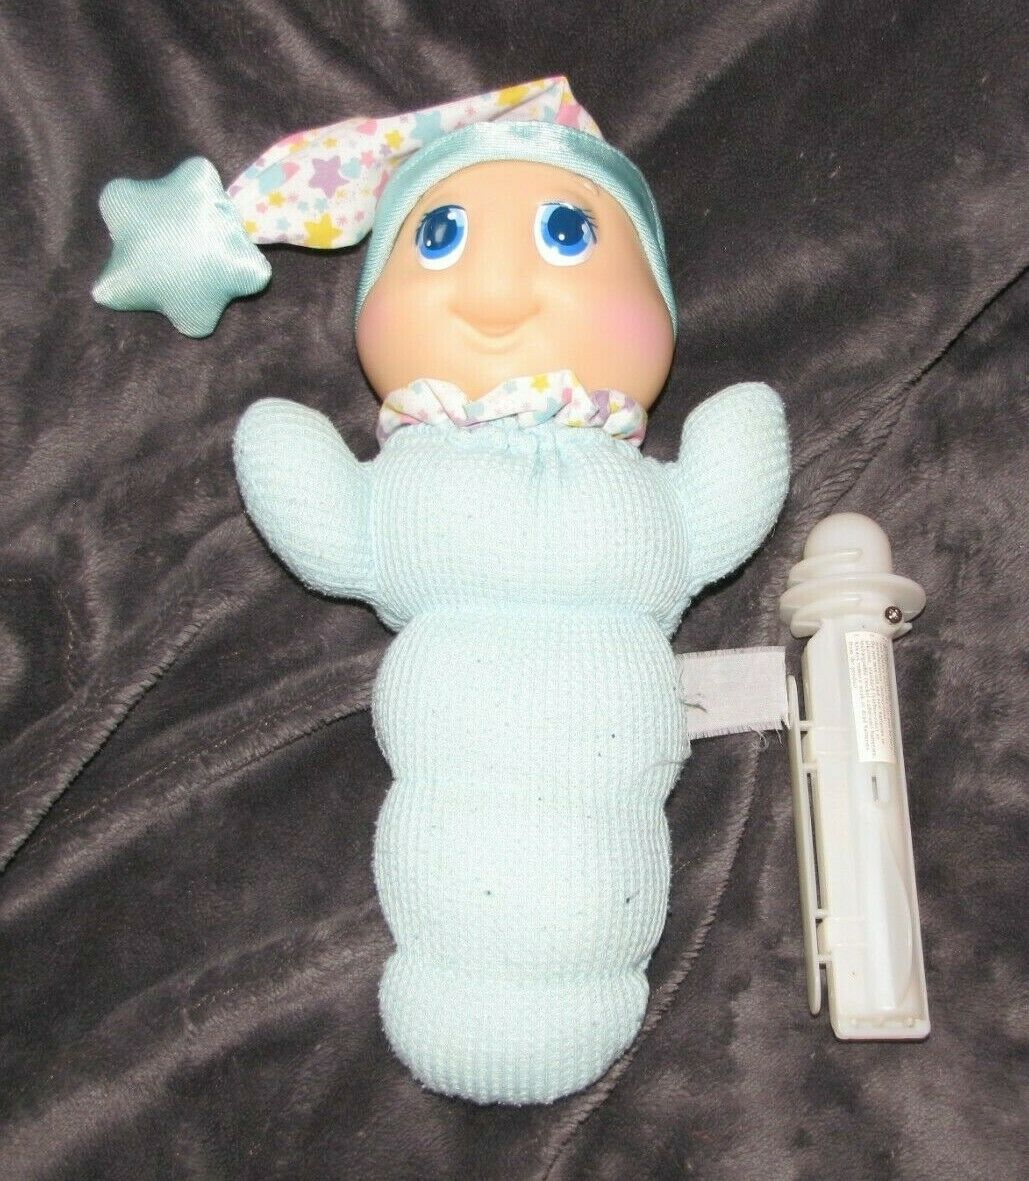 1995 Playskool Glow GLO WORM Gloworm bluee Thermal Waffle 11  Plush Vintage